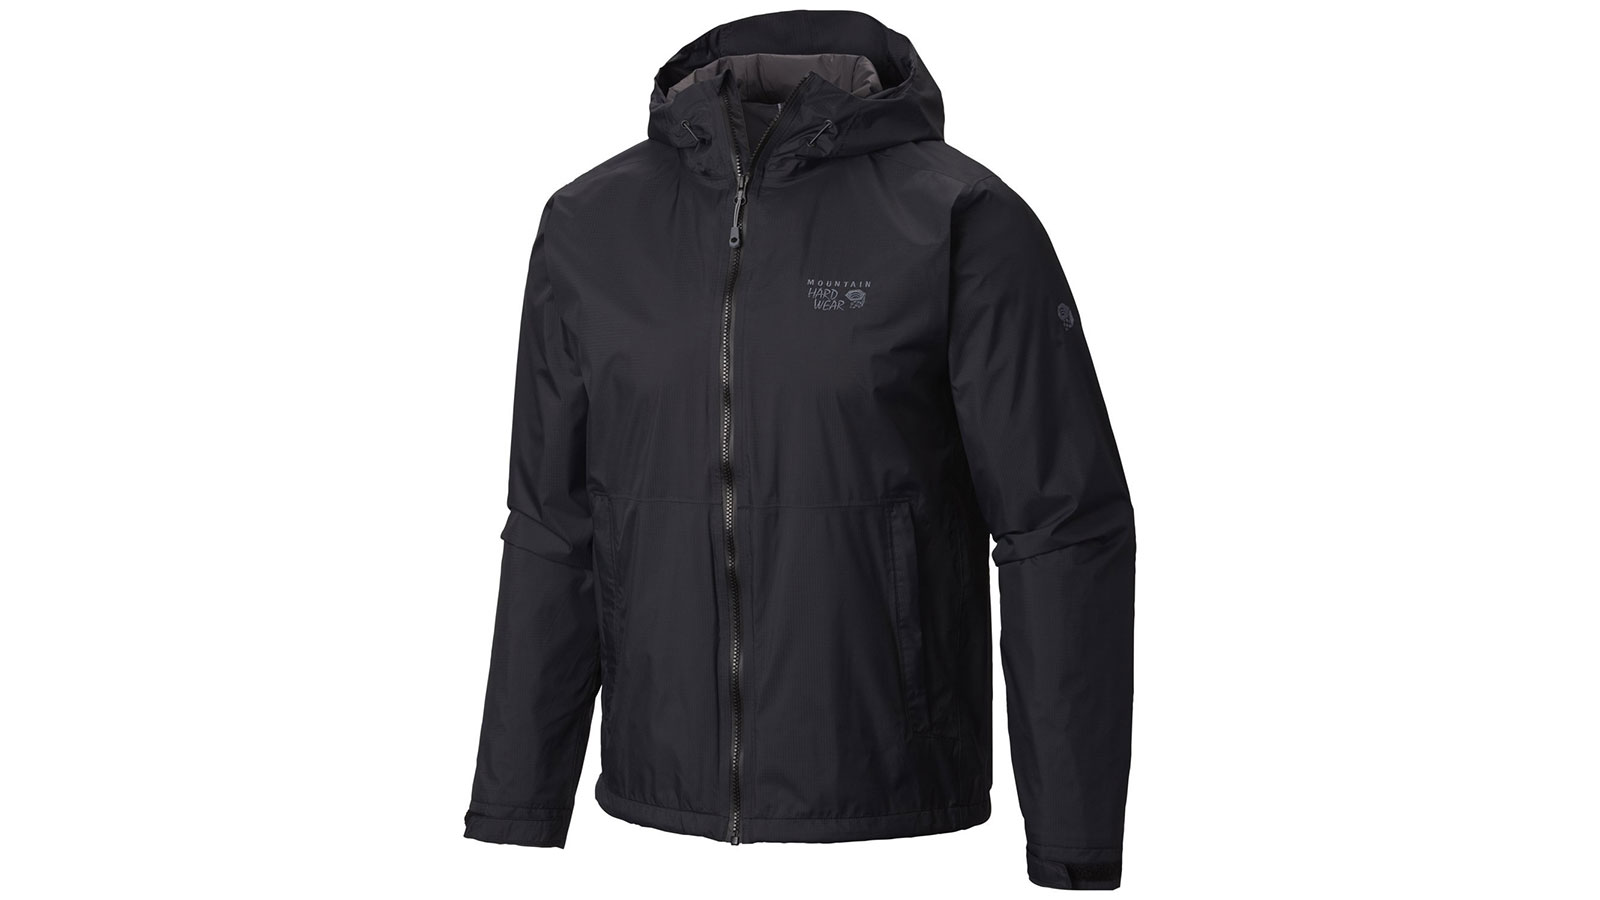 Mountain Hardwear Finder Men's Windbreaker Jacket | the best men's windbreakr jackets